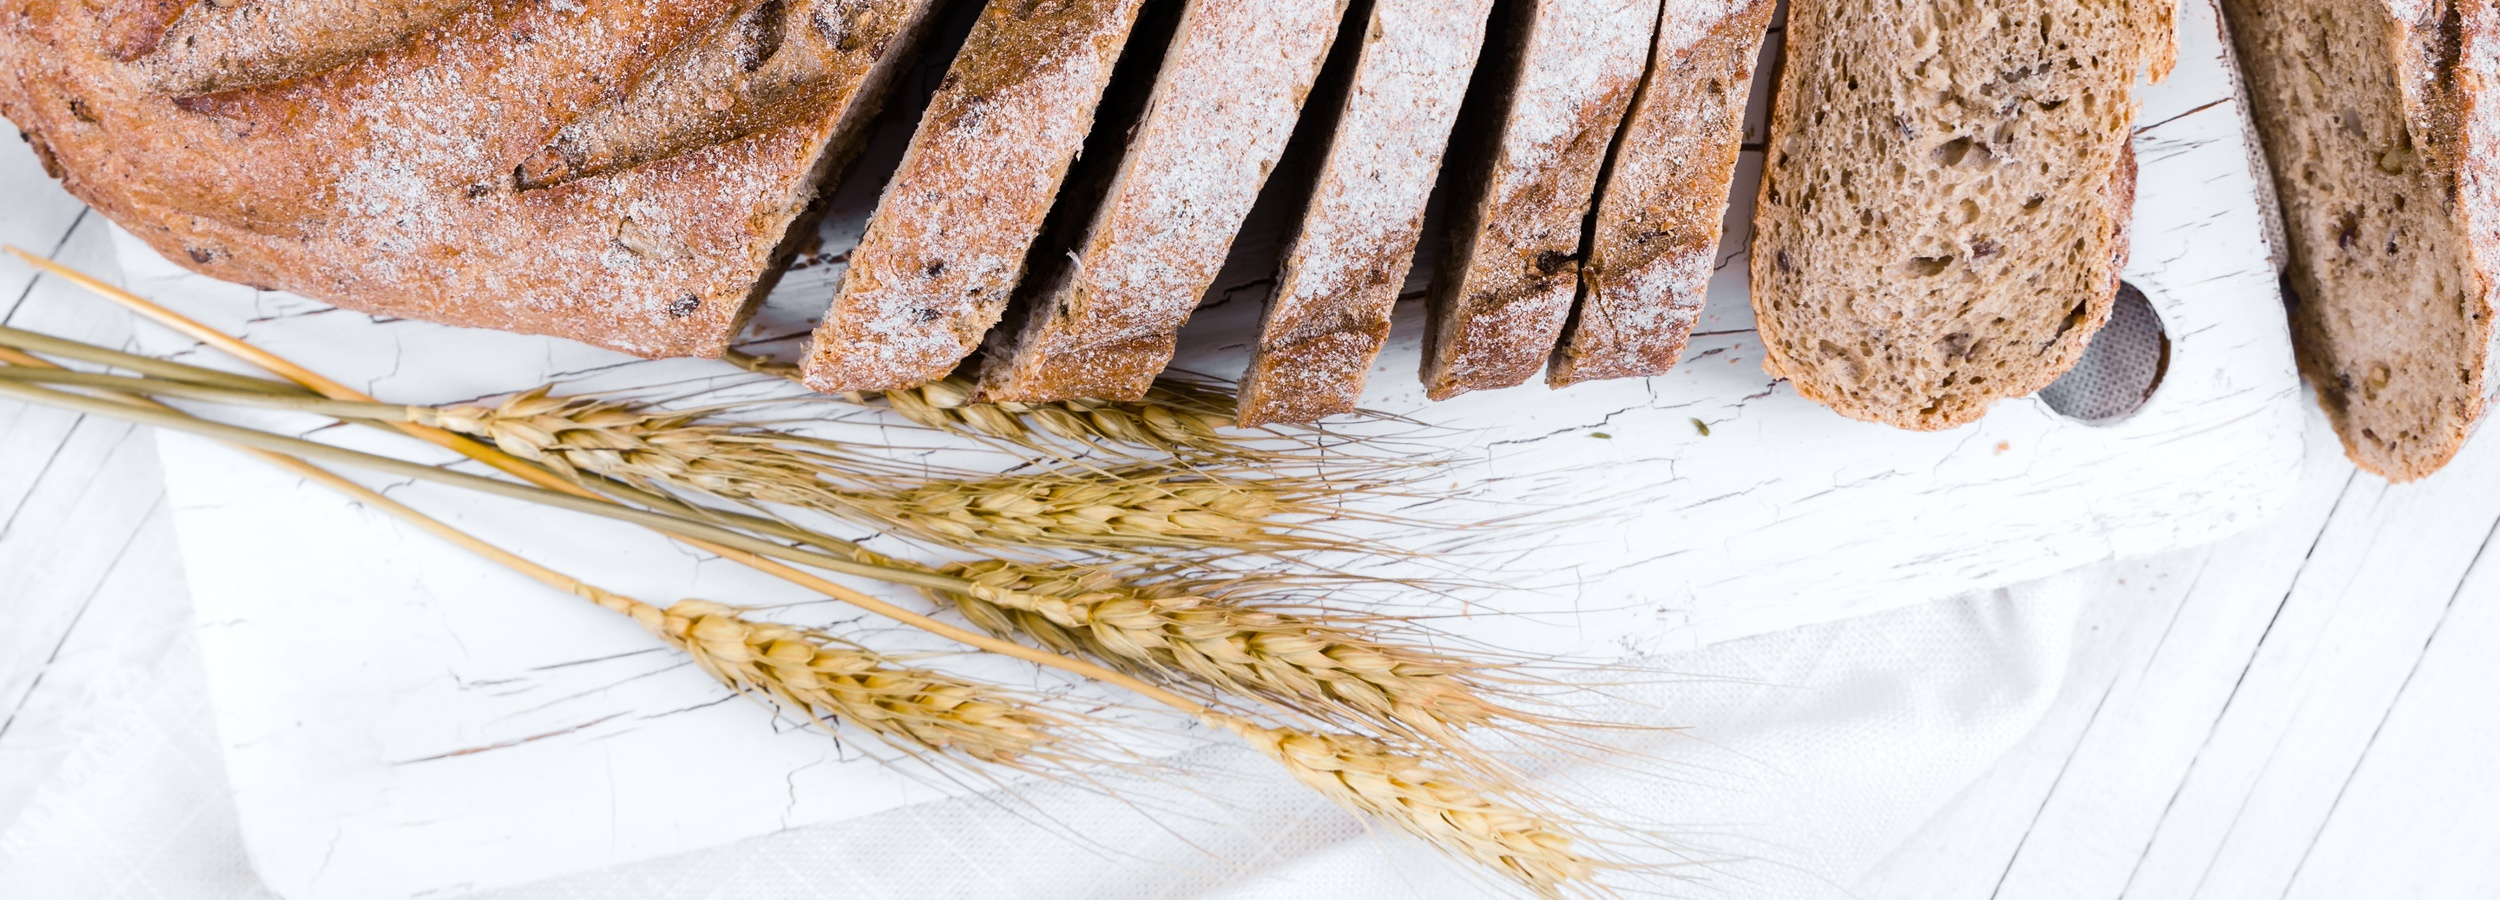 Bread contains gluten, which is a healthy protein for most people